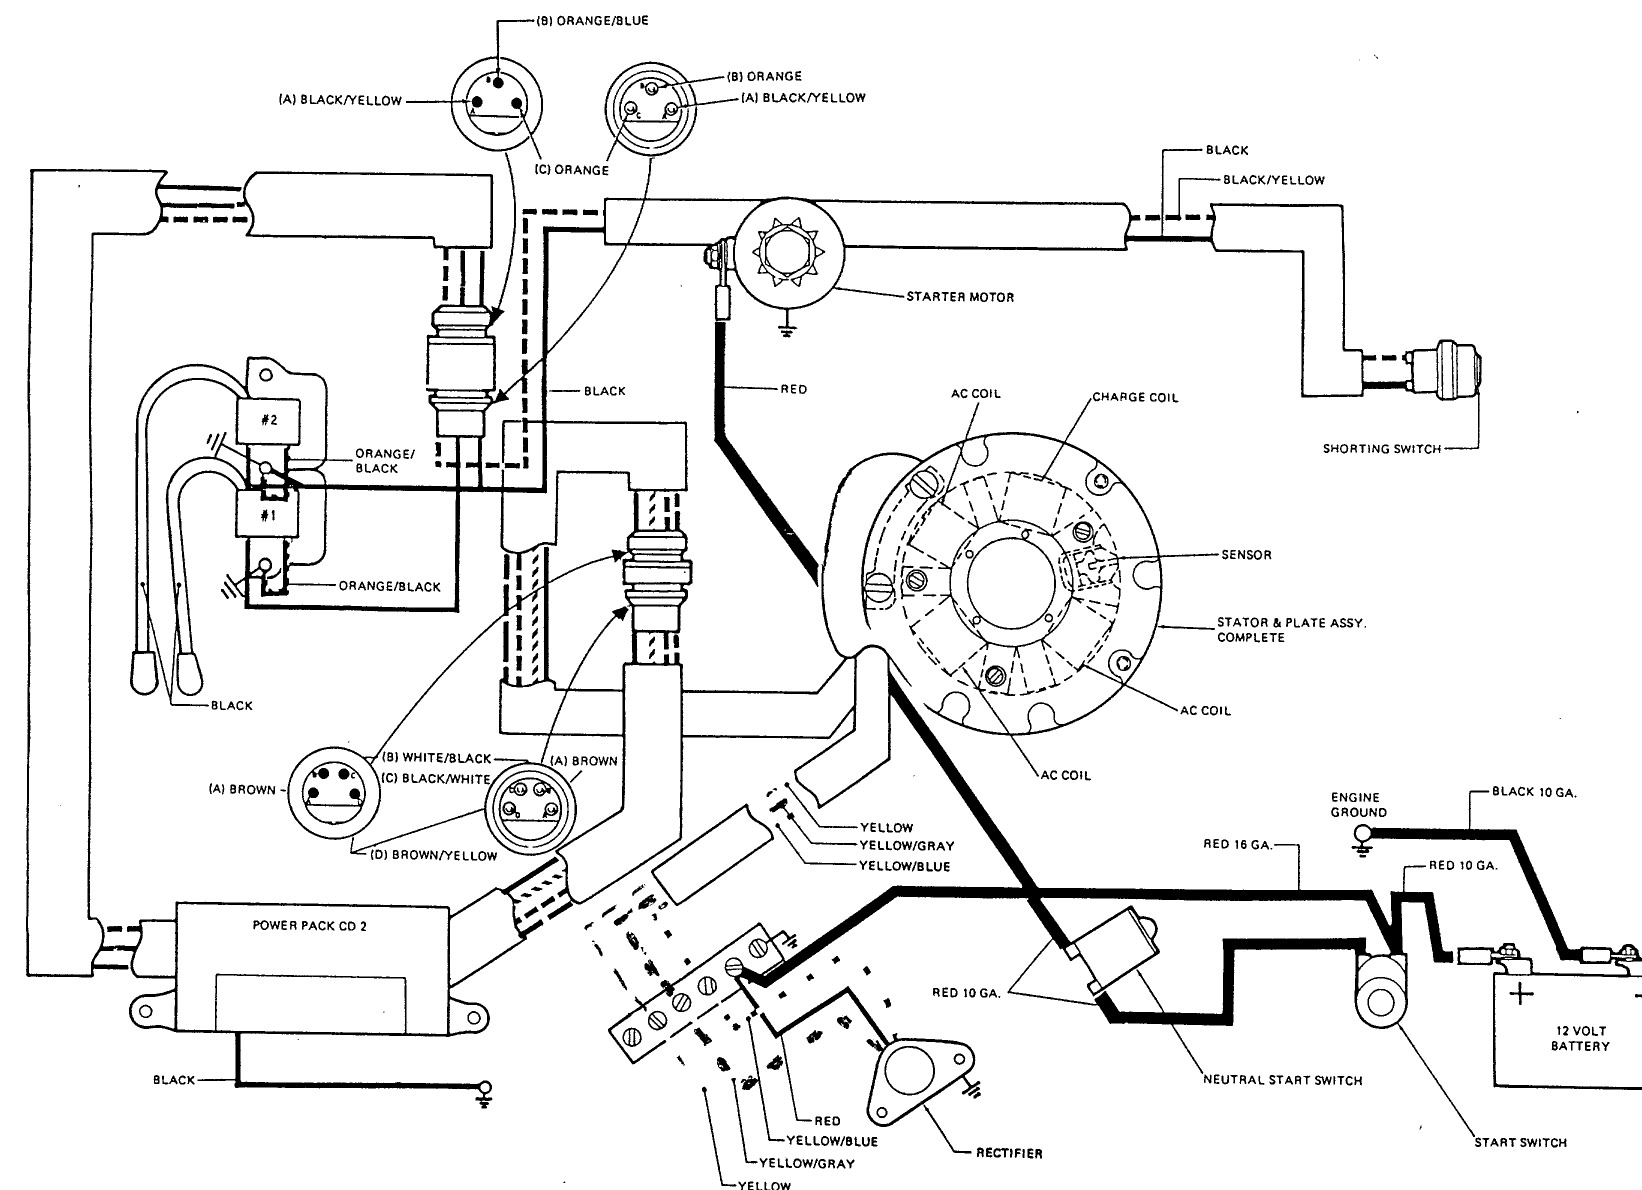 90 Evinrude Wiring Diagram | Wiring Diagram on evinrude e-tec outboard diagram, yamaha 90 hp outboard diagram, evinrude 48 spl diagram, evinrude engine parts diagram,